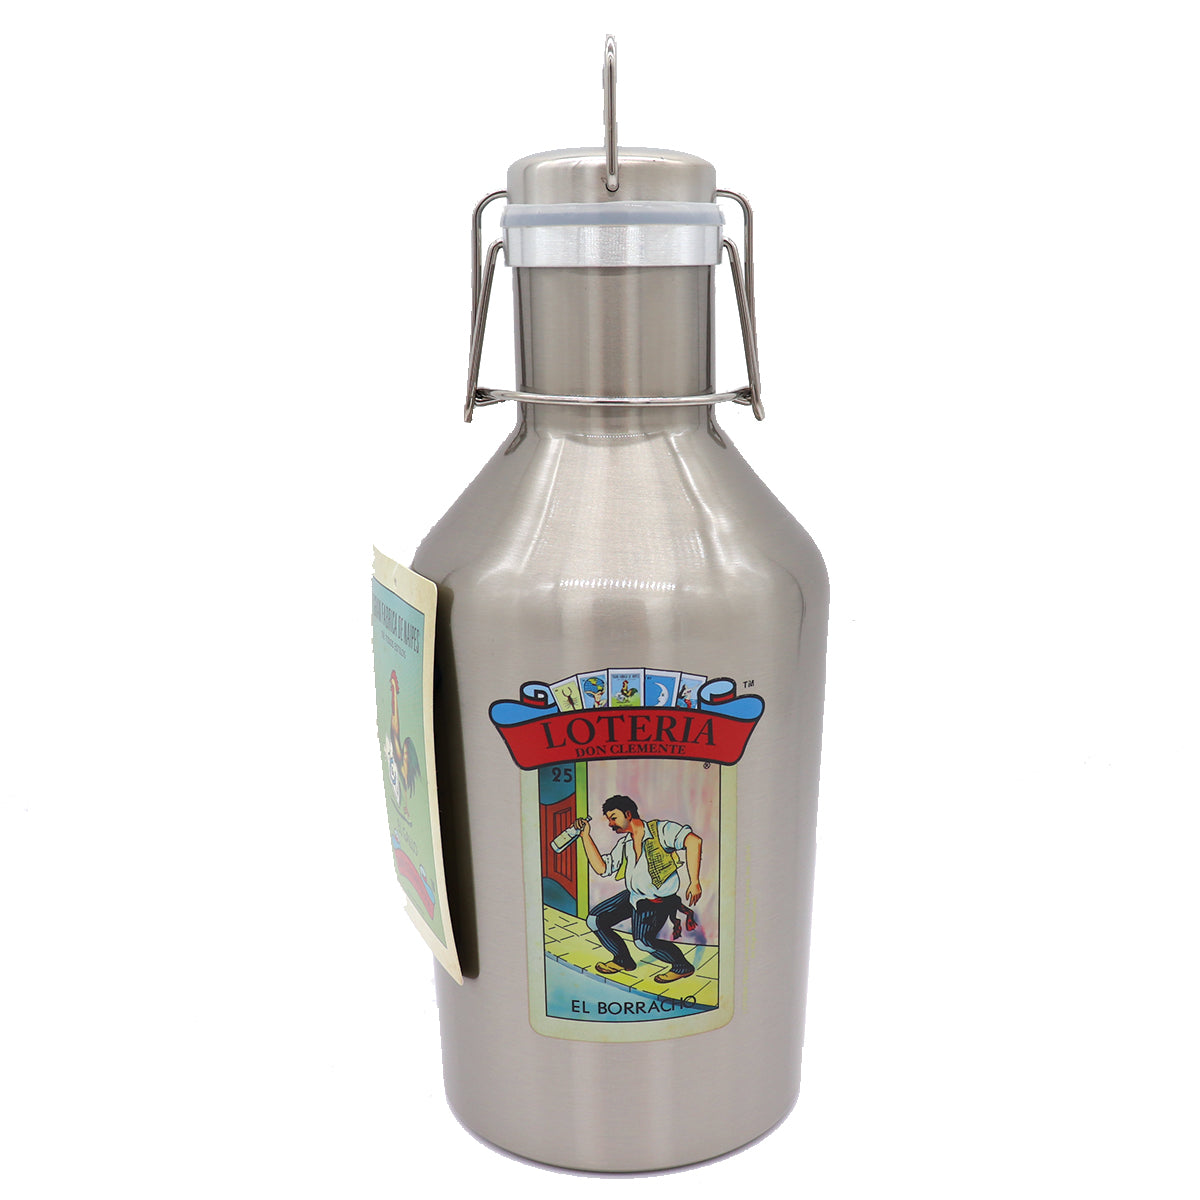 Stainless steel growler with a built in swing lid featuring a Loteria design with card numer 25 El Borracho and Loteria on a re Banner above. Drinking Container.